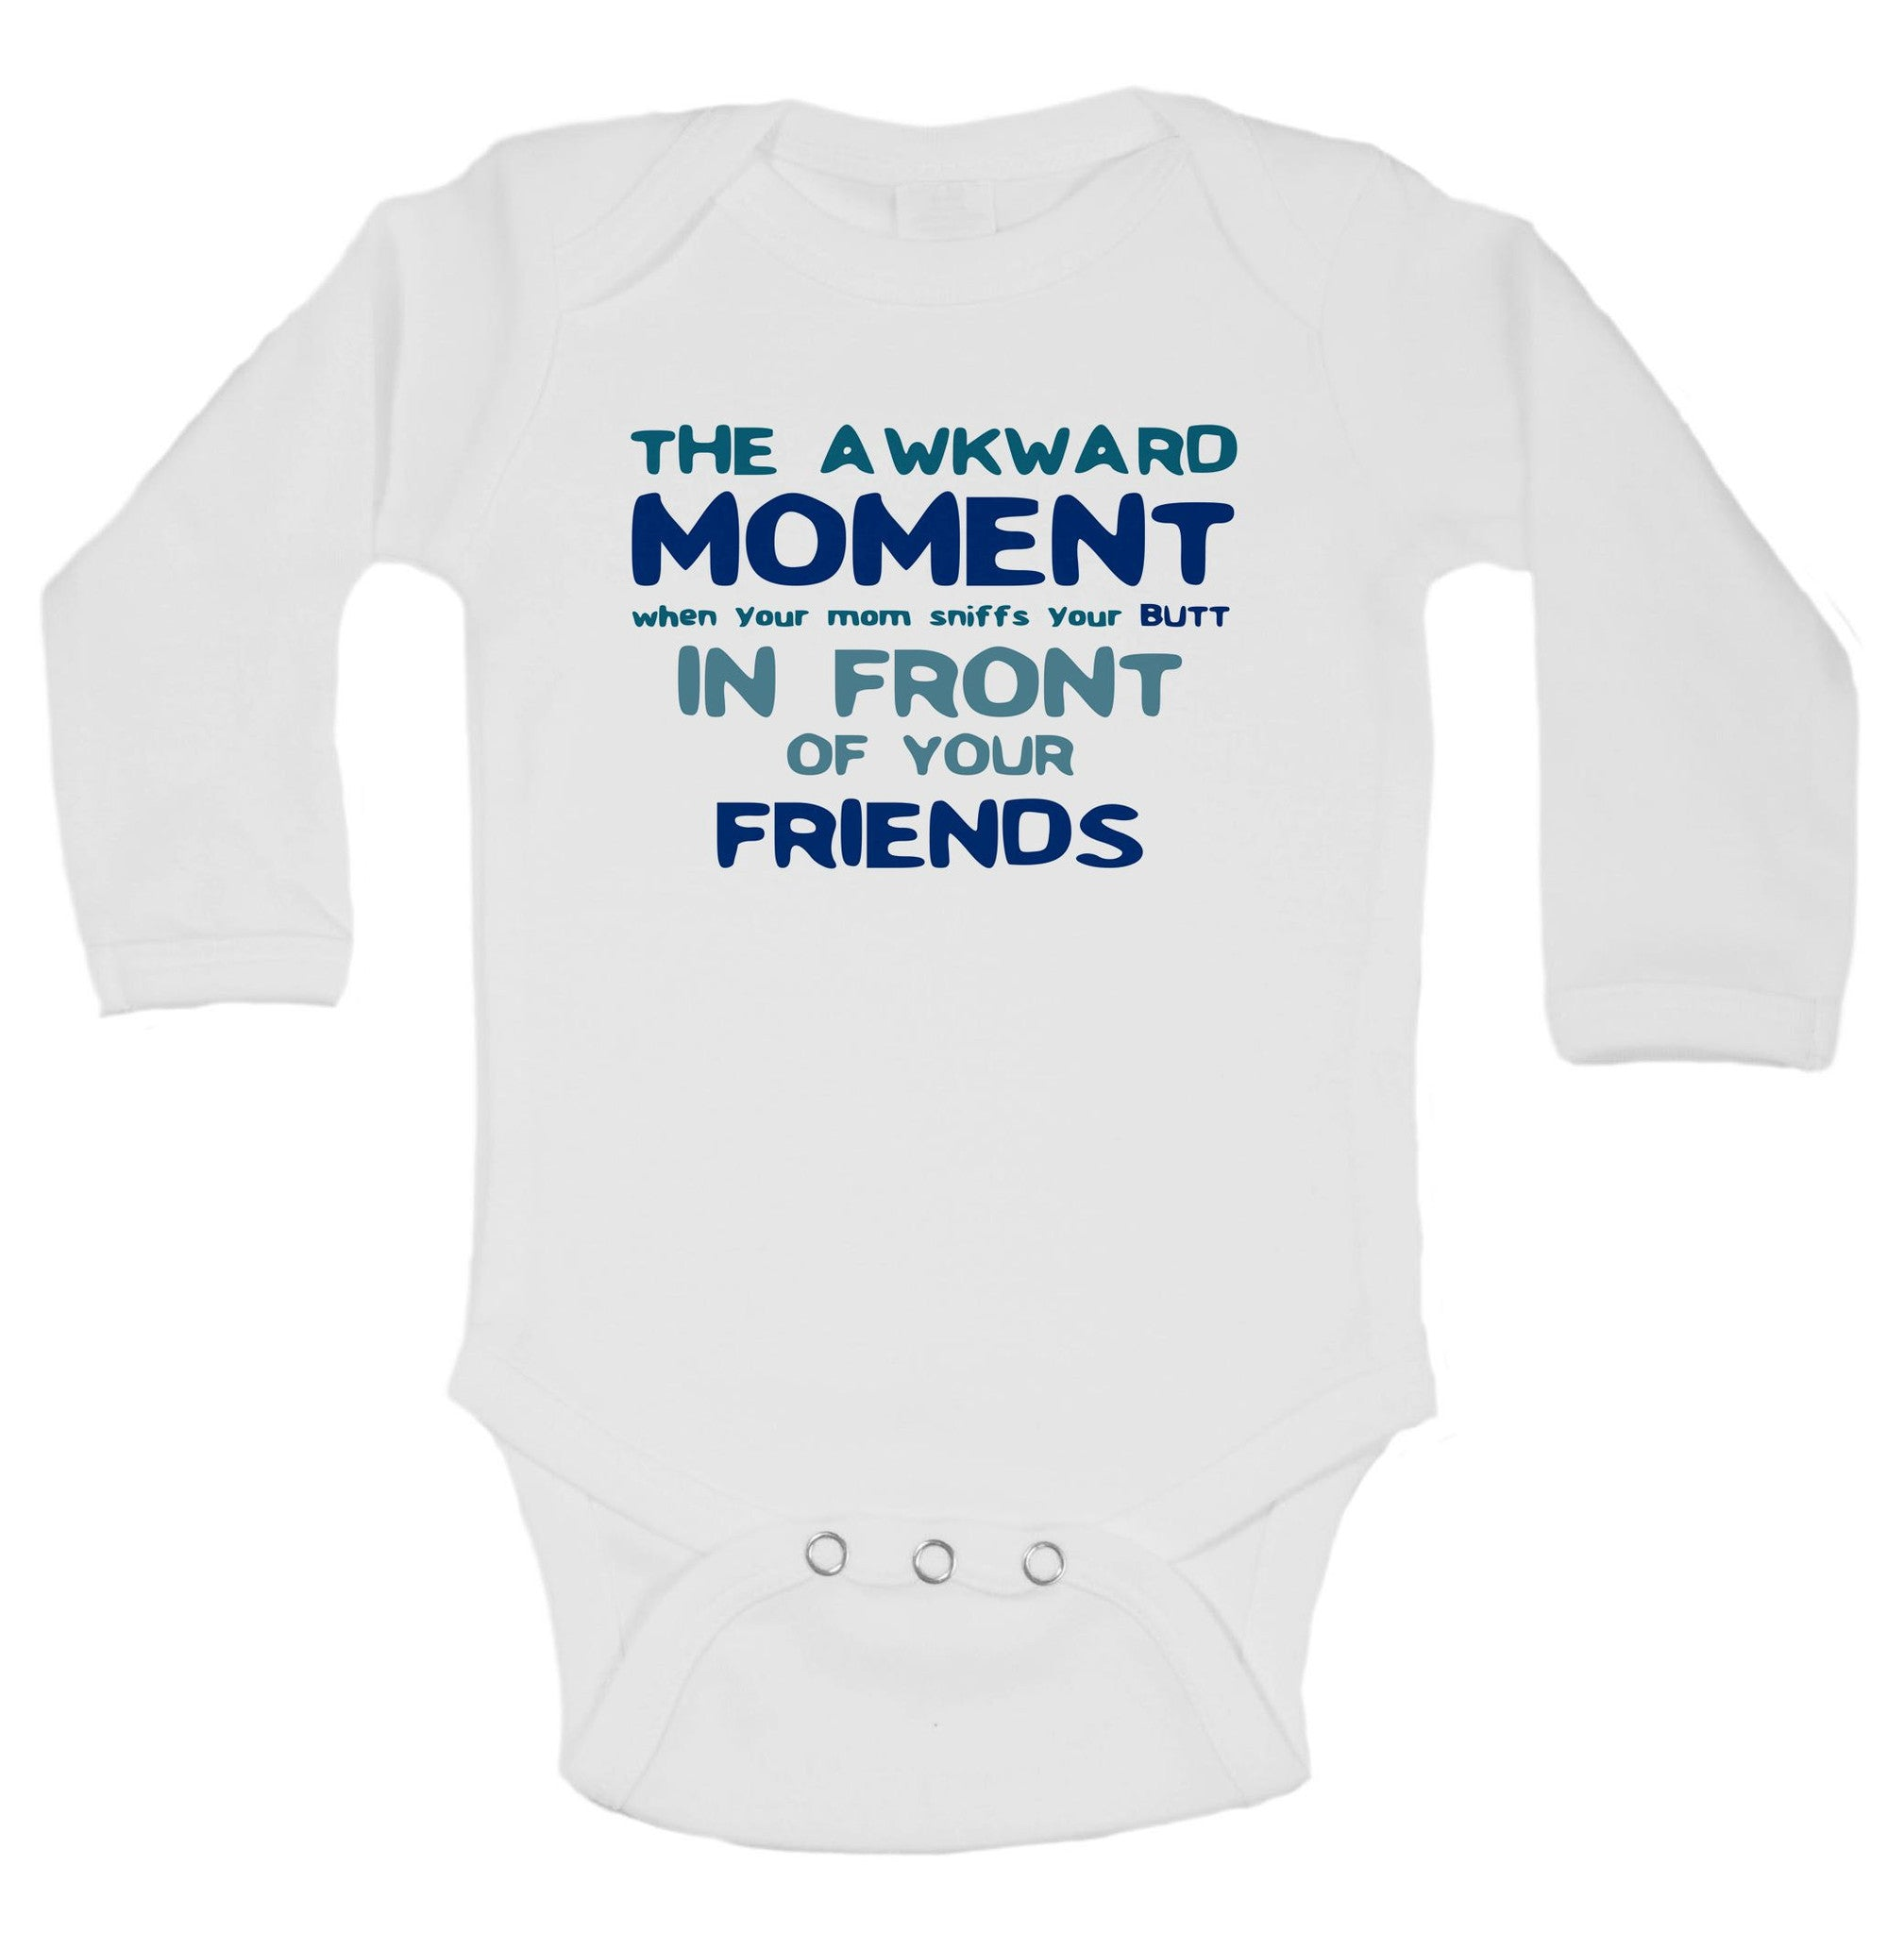 The Awkward Moment When Your Mom Sniffs Your Butt In Front Of Your Friends Funny Kids Onesie - B36 - Funny Shirts Tank Tops Burnouts and Triblends  - 1